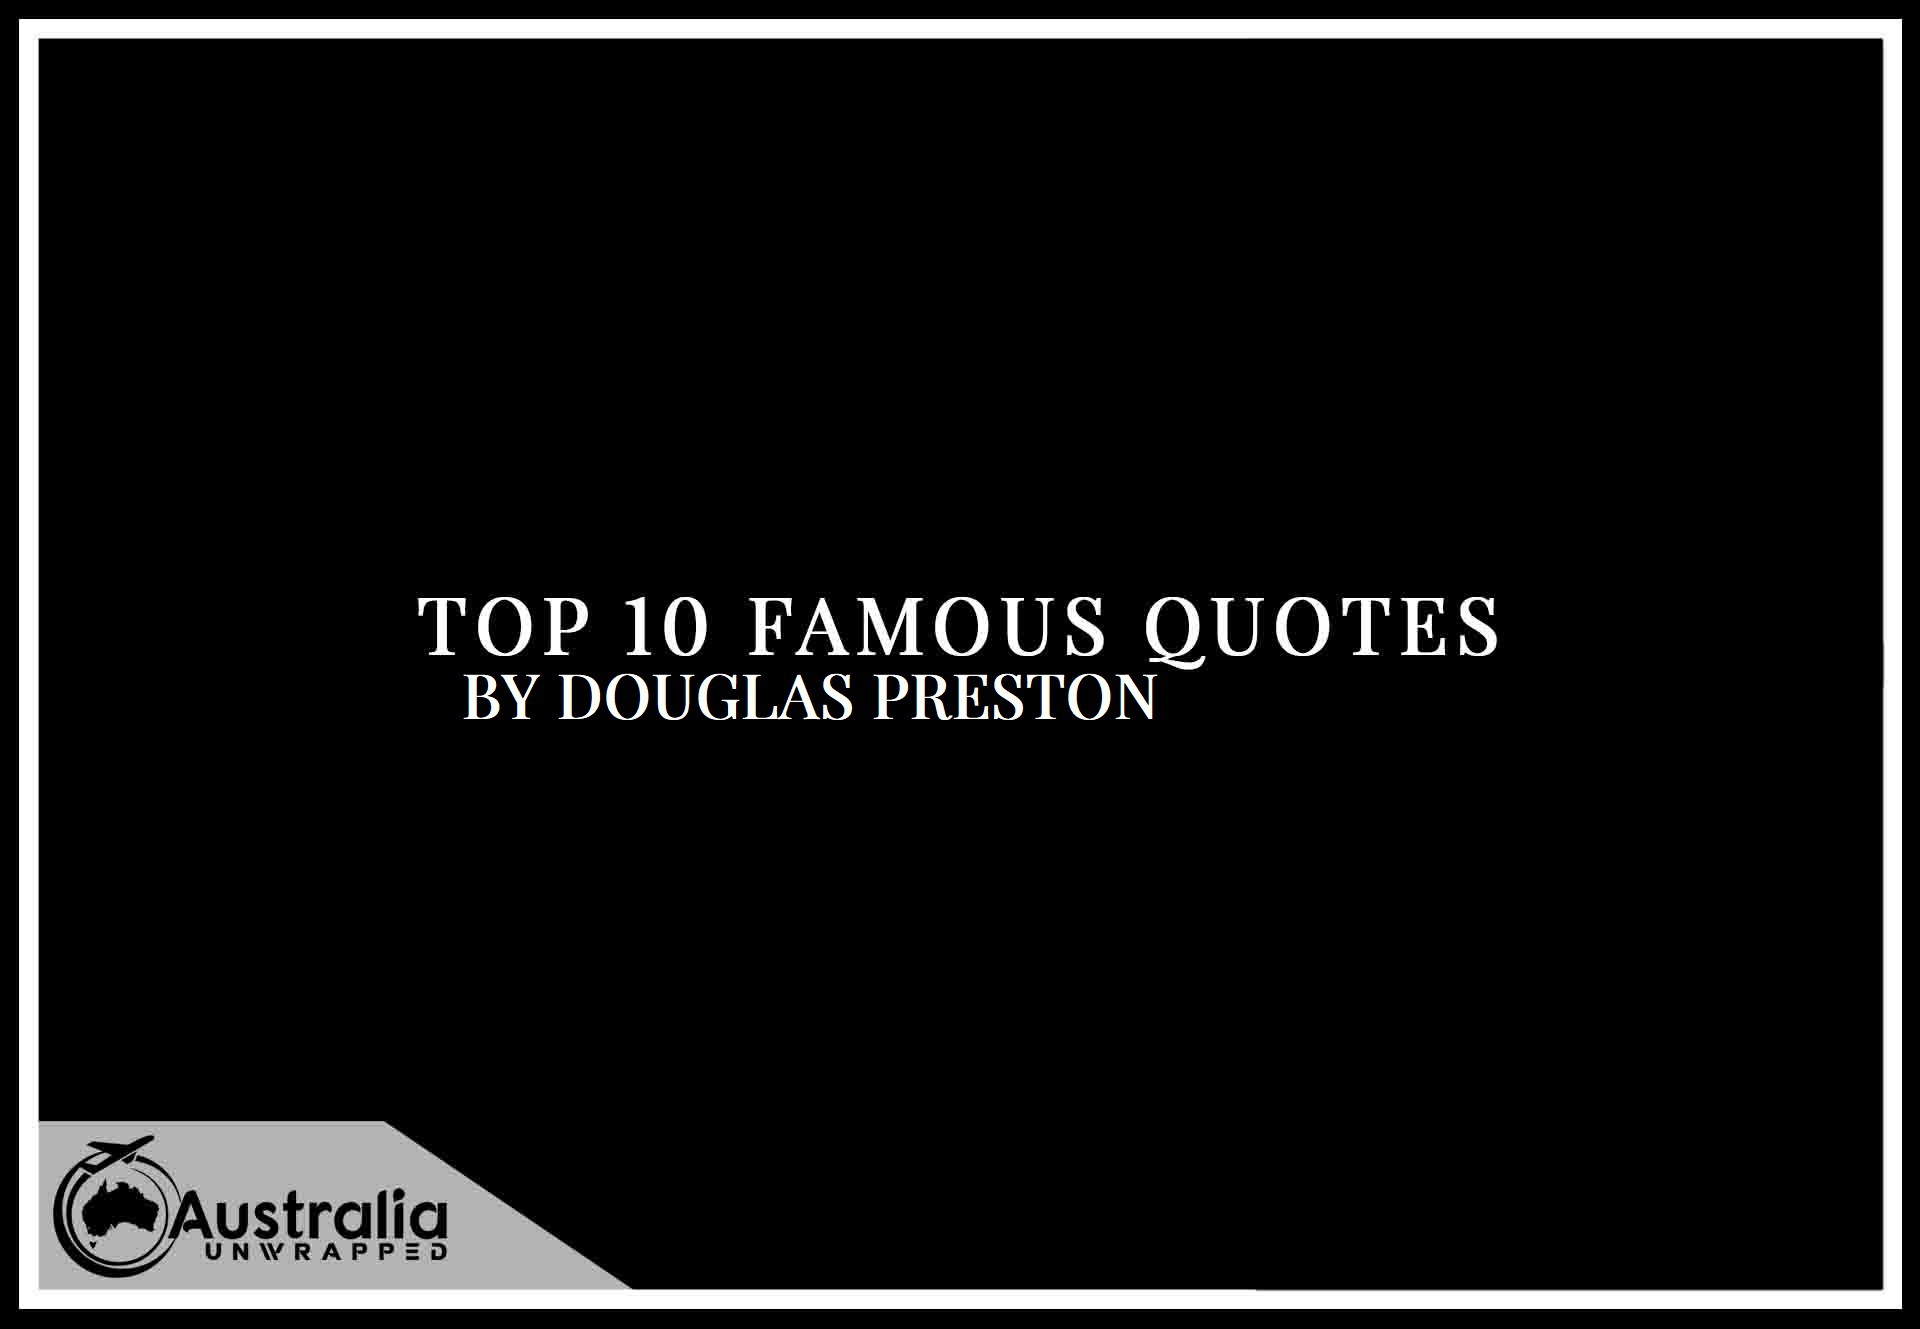 Top 10 Famous Quotes by Author Douglas Preston